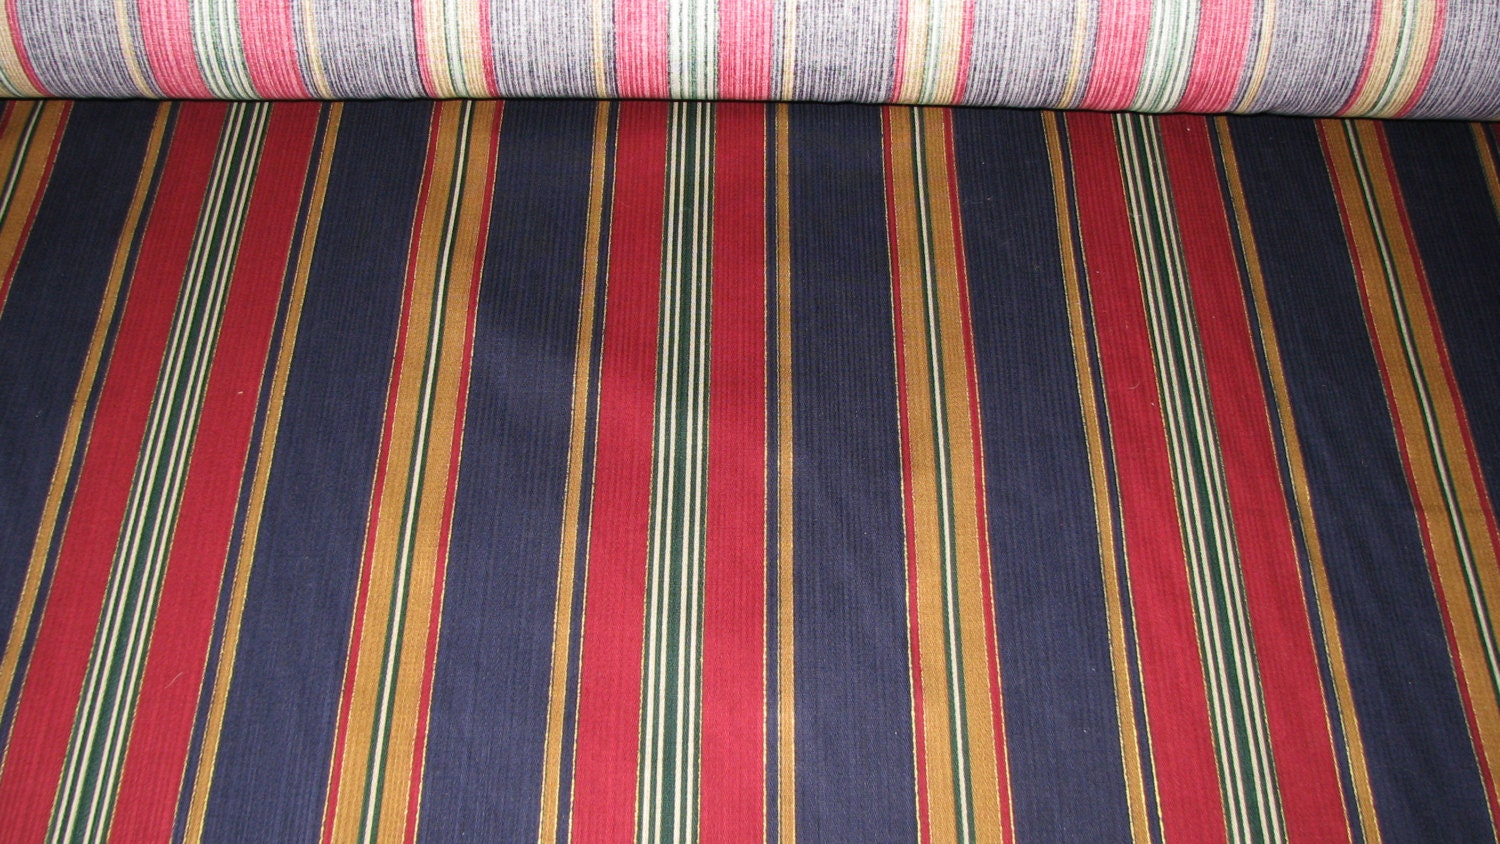 home decor fabric stripes vivid colors sold by the yard. Black Bedroom Furniture Sets. Home Design Ideas